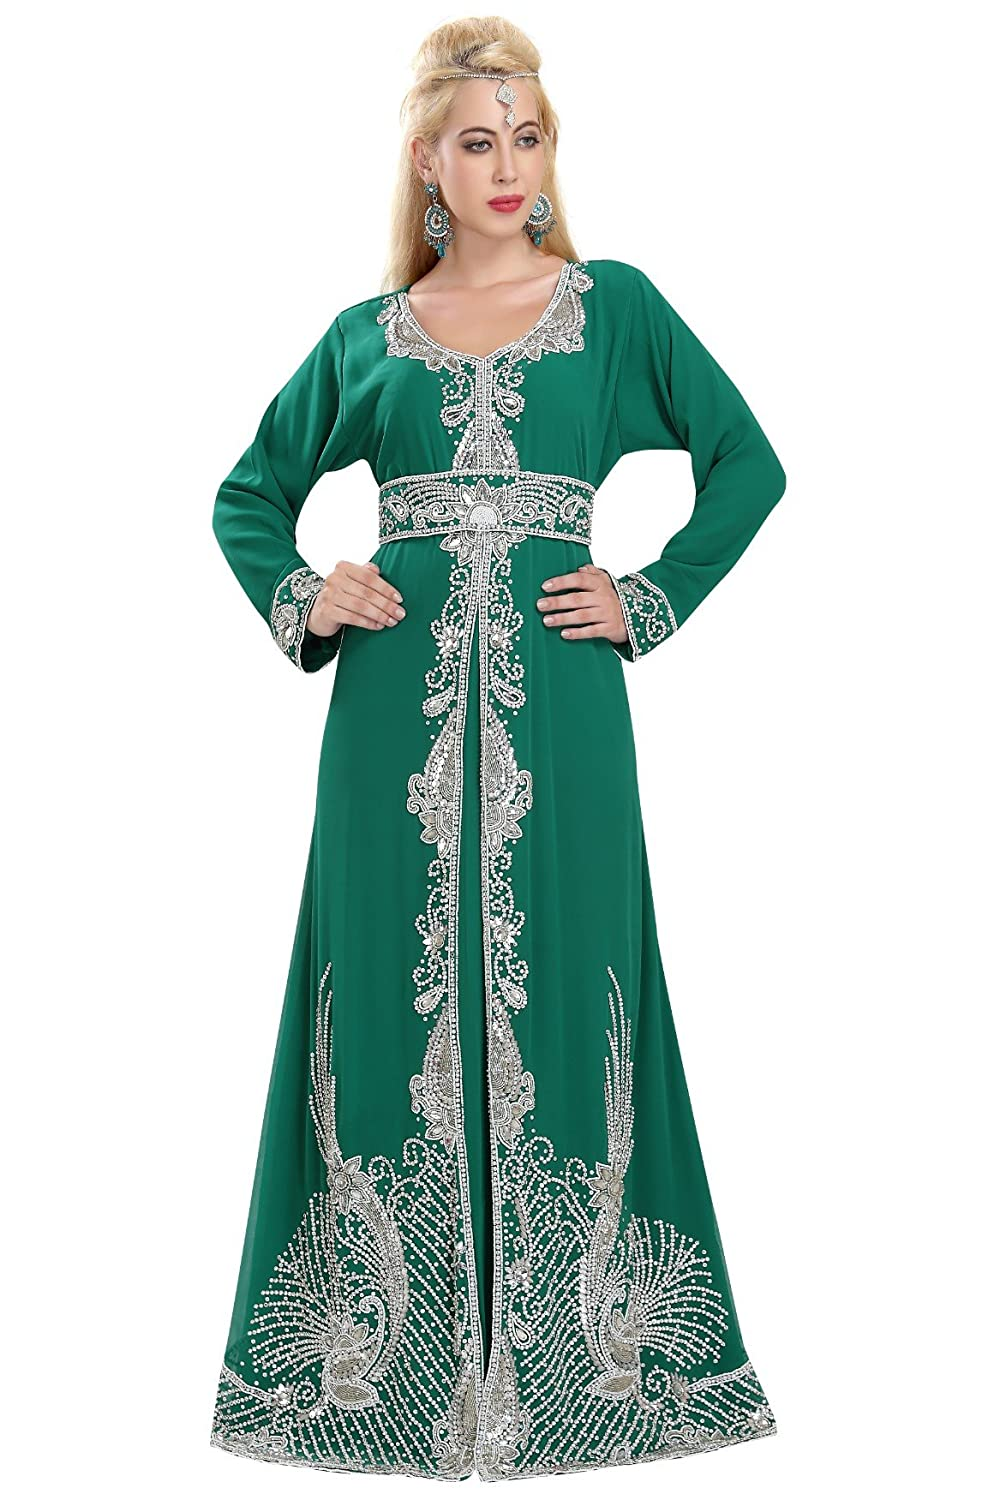 Arabian Traditional Thobe Caftan By Maxim Creation For Women 5847